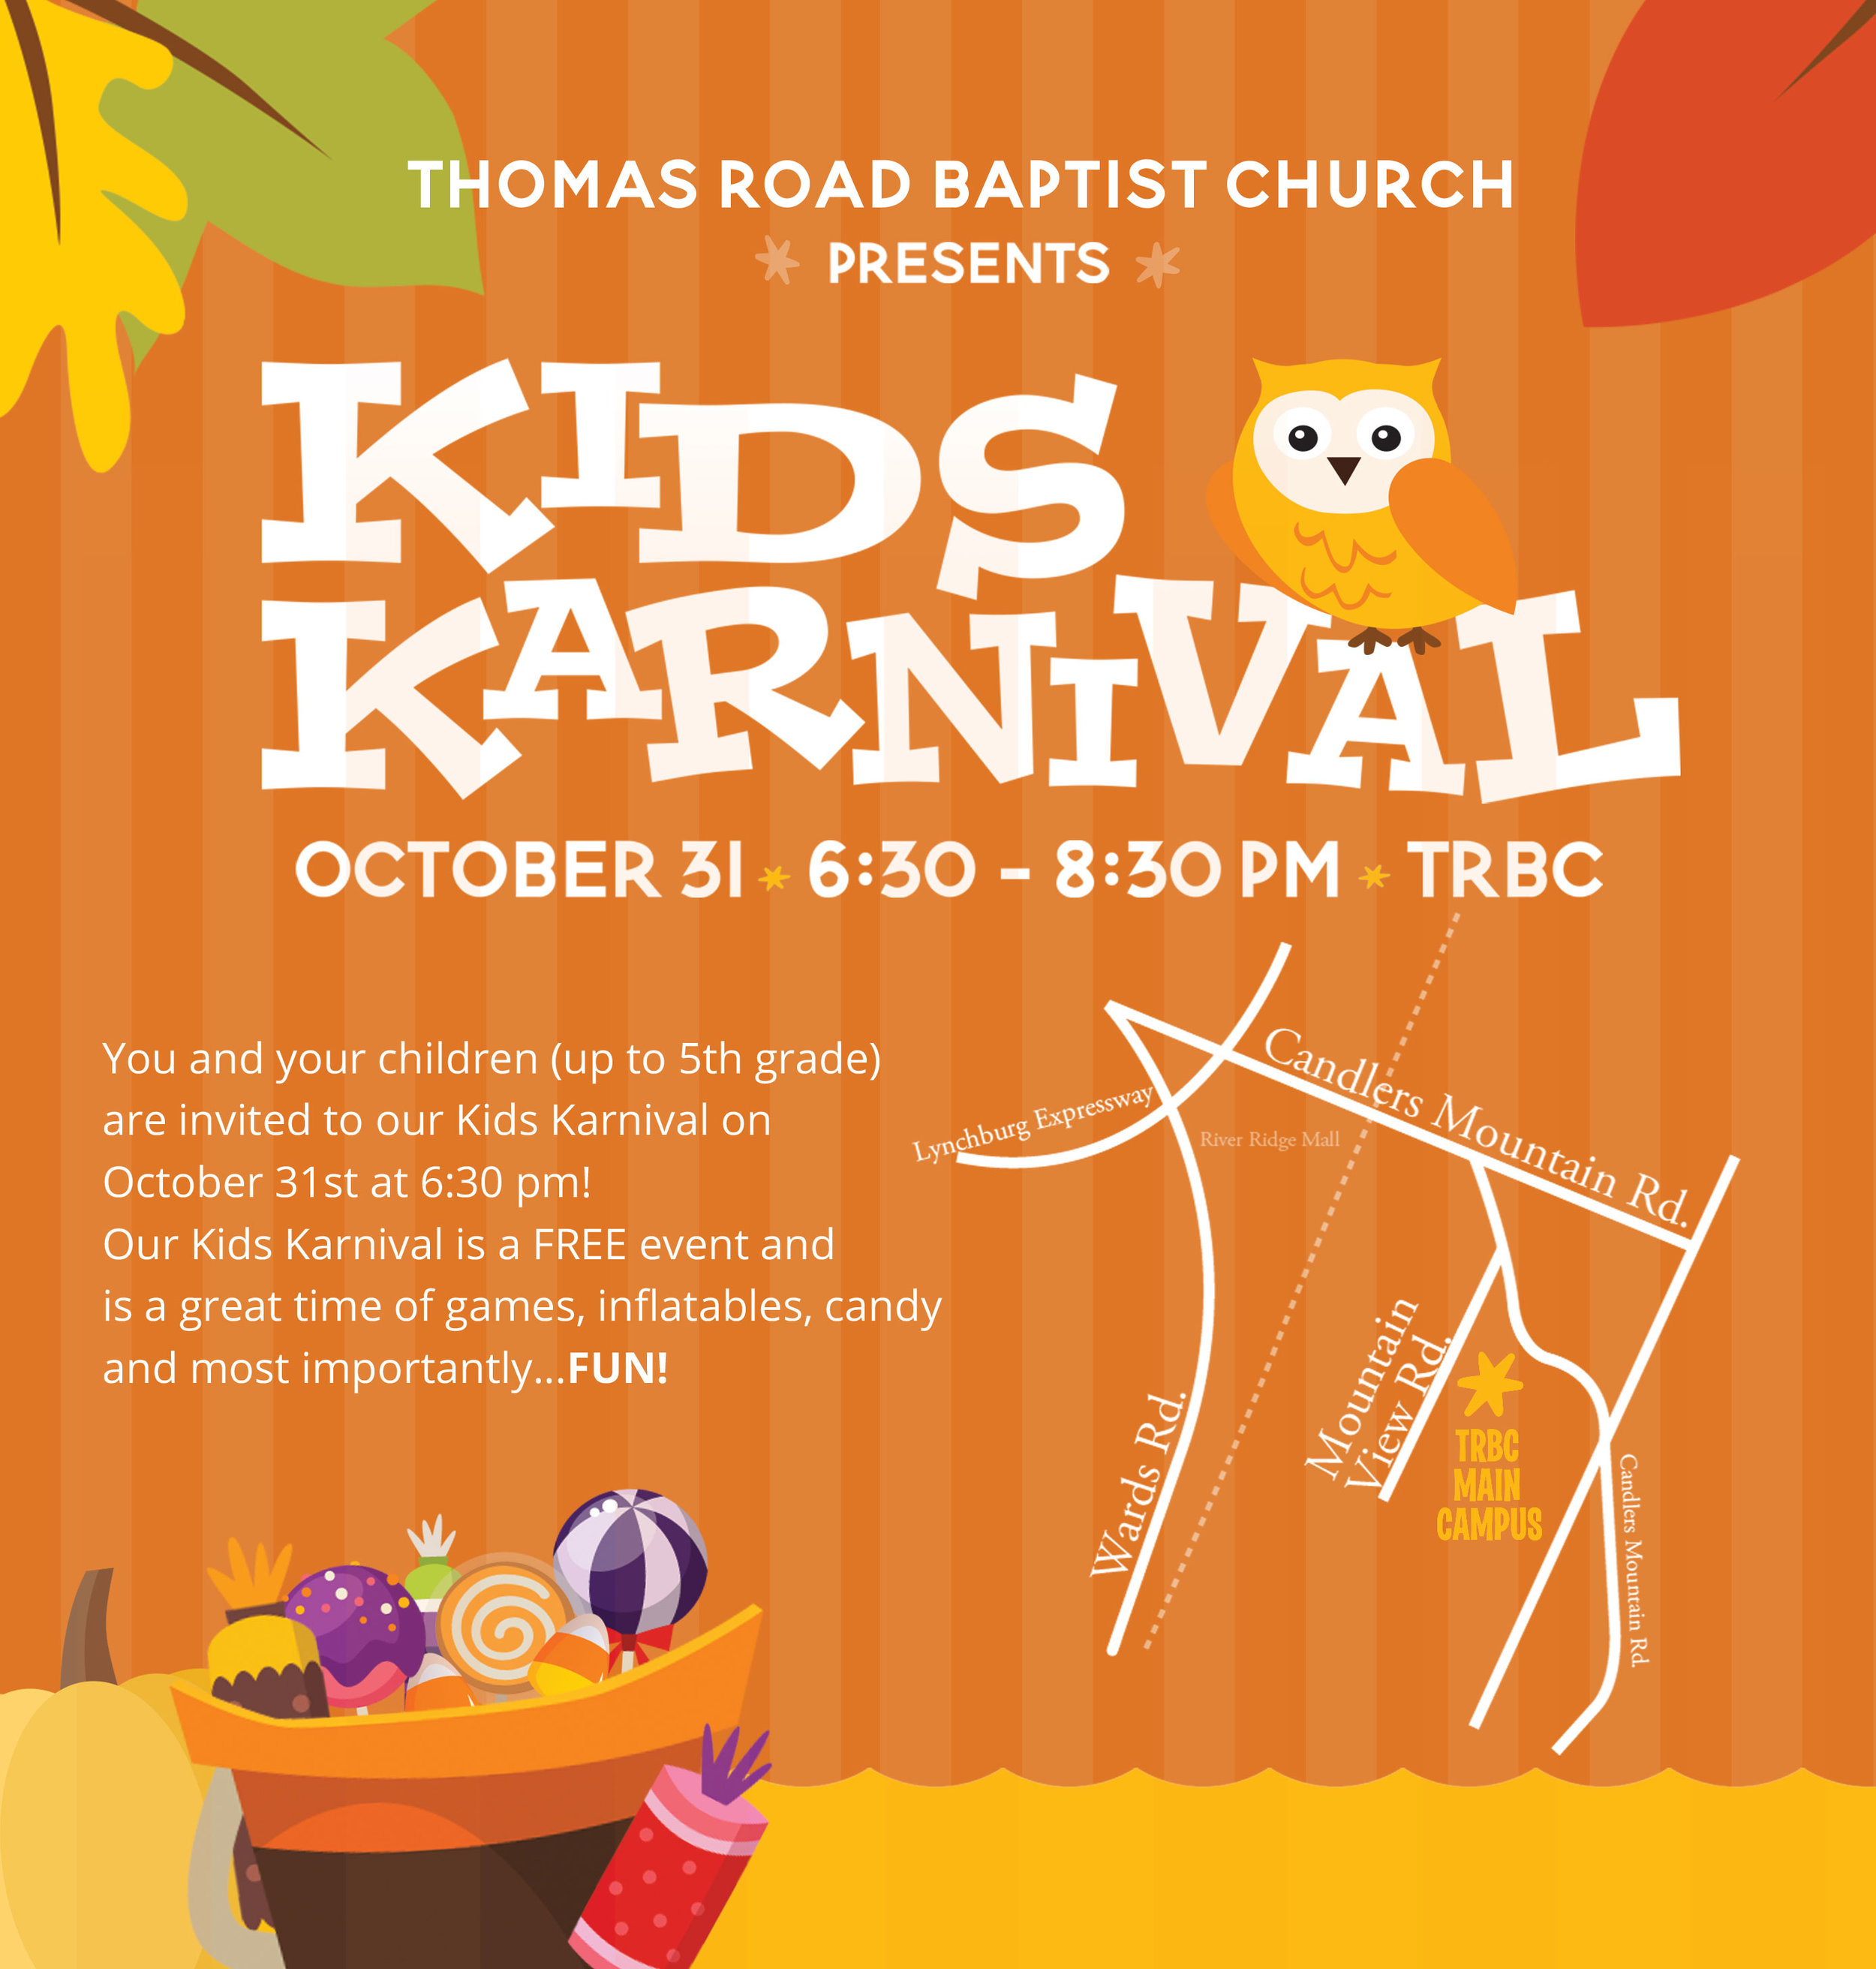 Kids Karnival - 6:30-8:30pm, FREEThomas Road Baptist ChurchTrunk or Treat! You and your kids (up to 5th grade) are invited to this Kids Karnival. Come out for a fun night of trunk-n-treating, giant inflatables, and games!